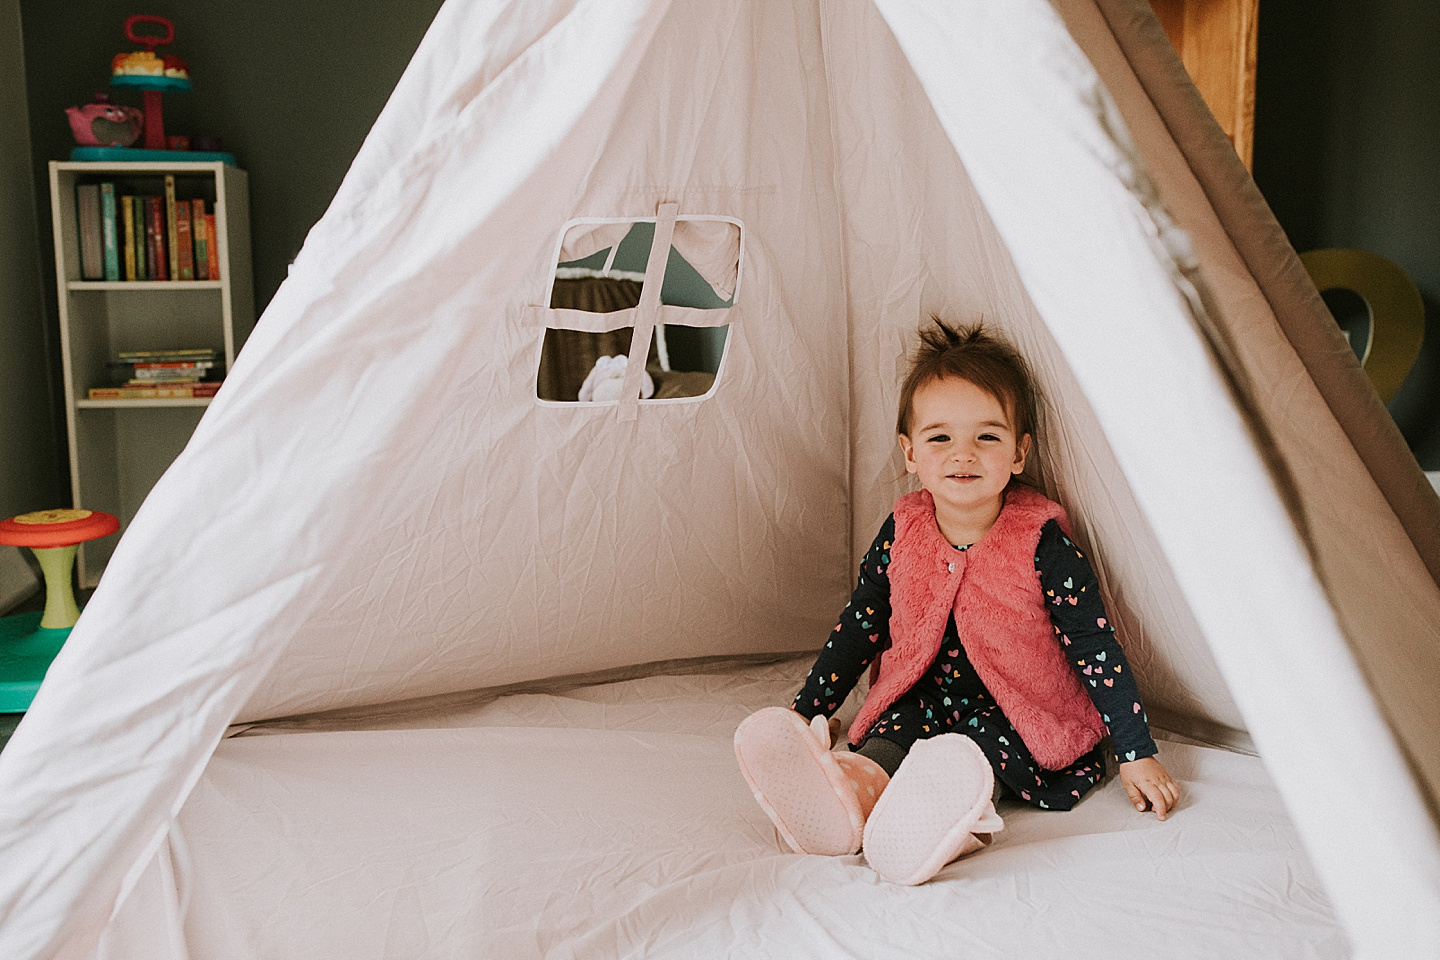 Toddler sitting in tent